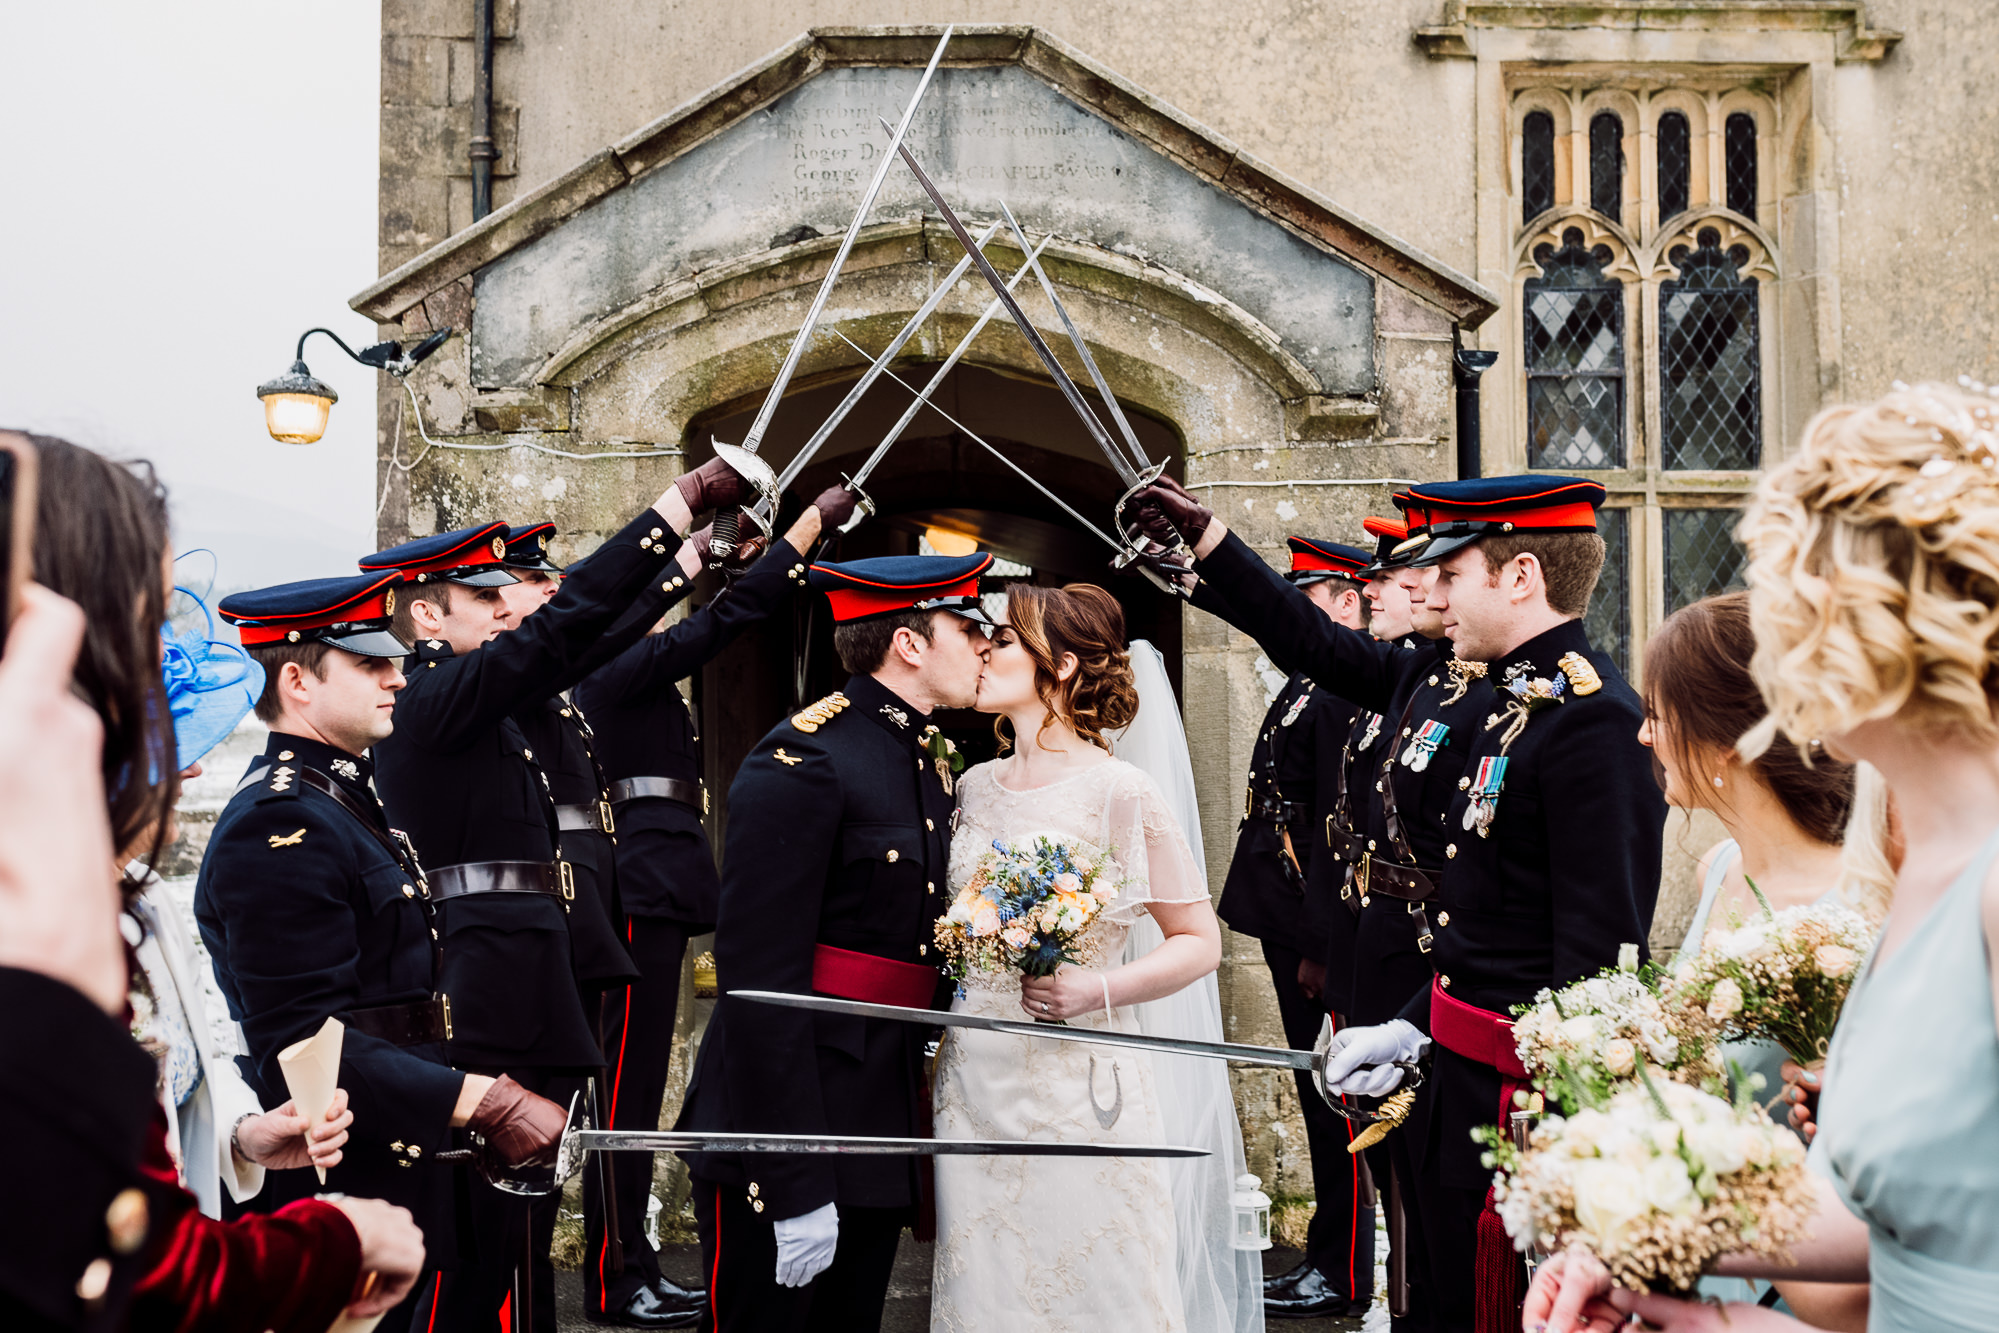 A kiss with members of the army and their swords